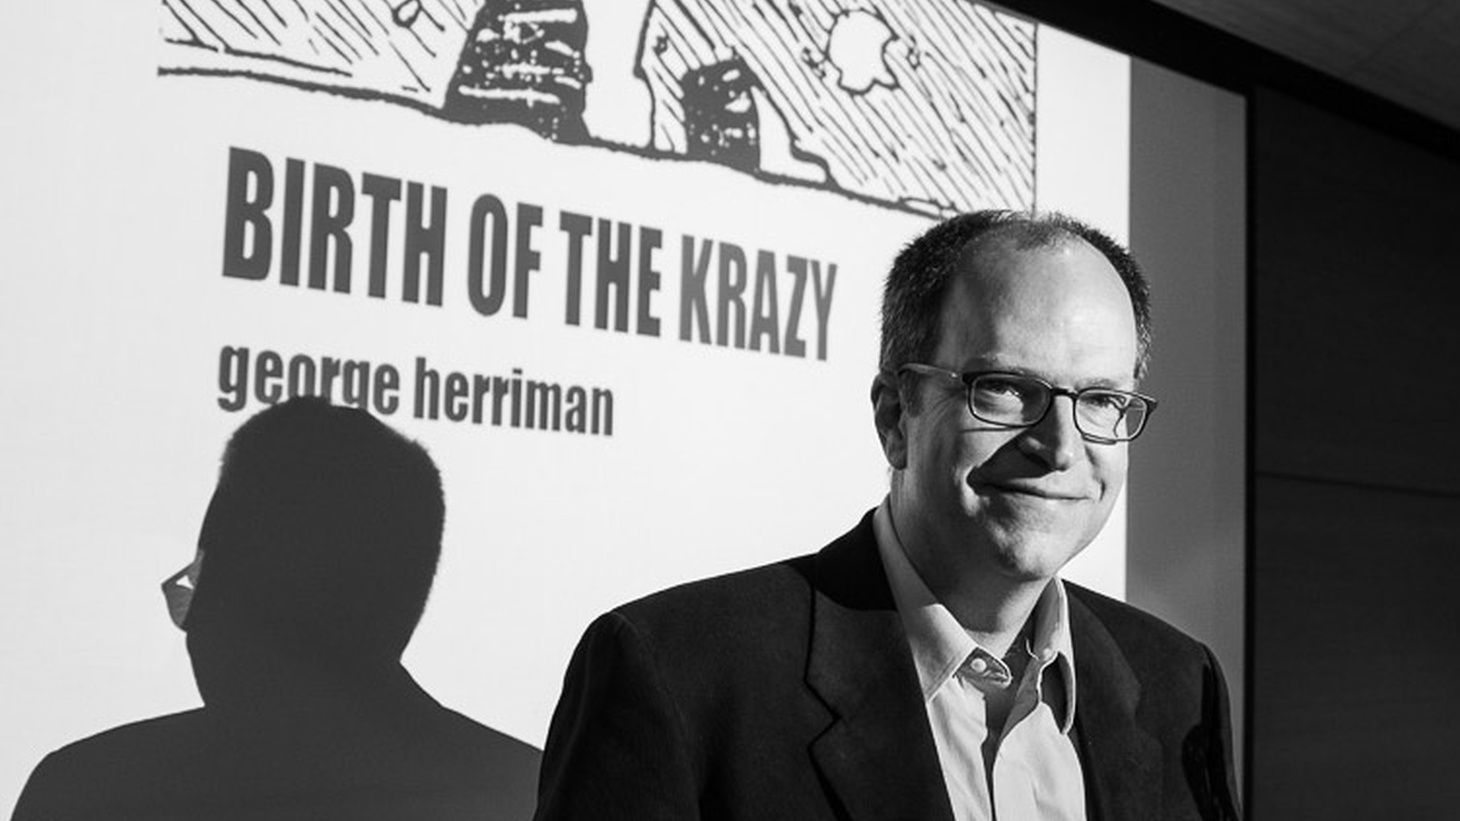 Author Michael Tisserand dives into the lesser known life of cartoonist George Herriman in his biography, Krazy.